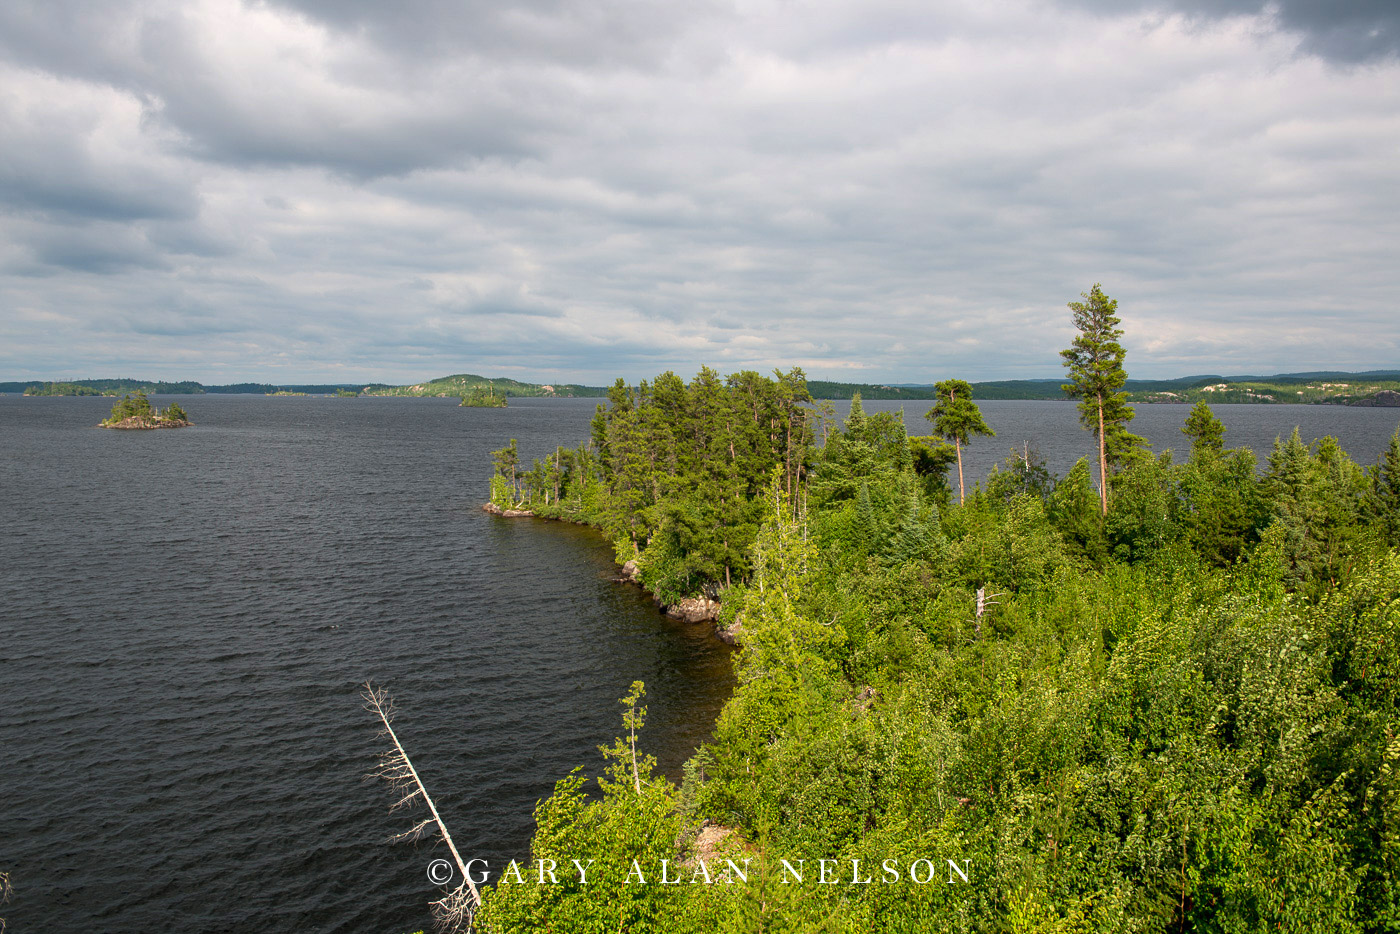 BWCA, BWCAW, boundary waters, boundary waters canoe area, seagull lake, photo